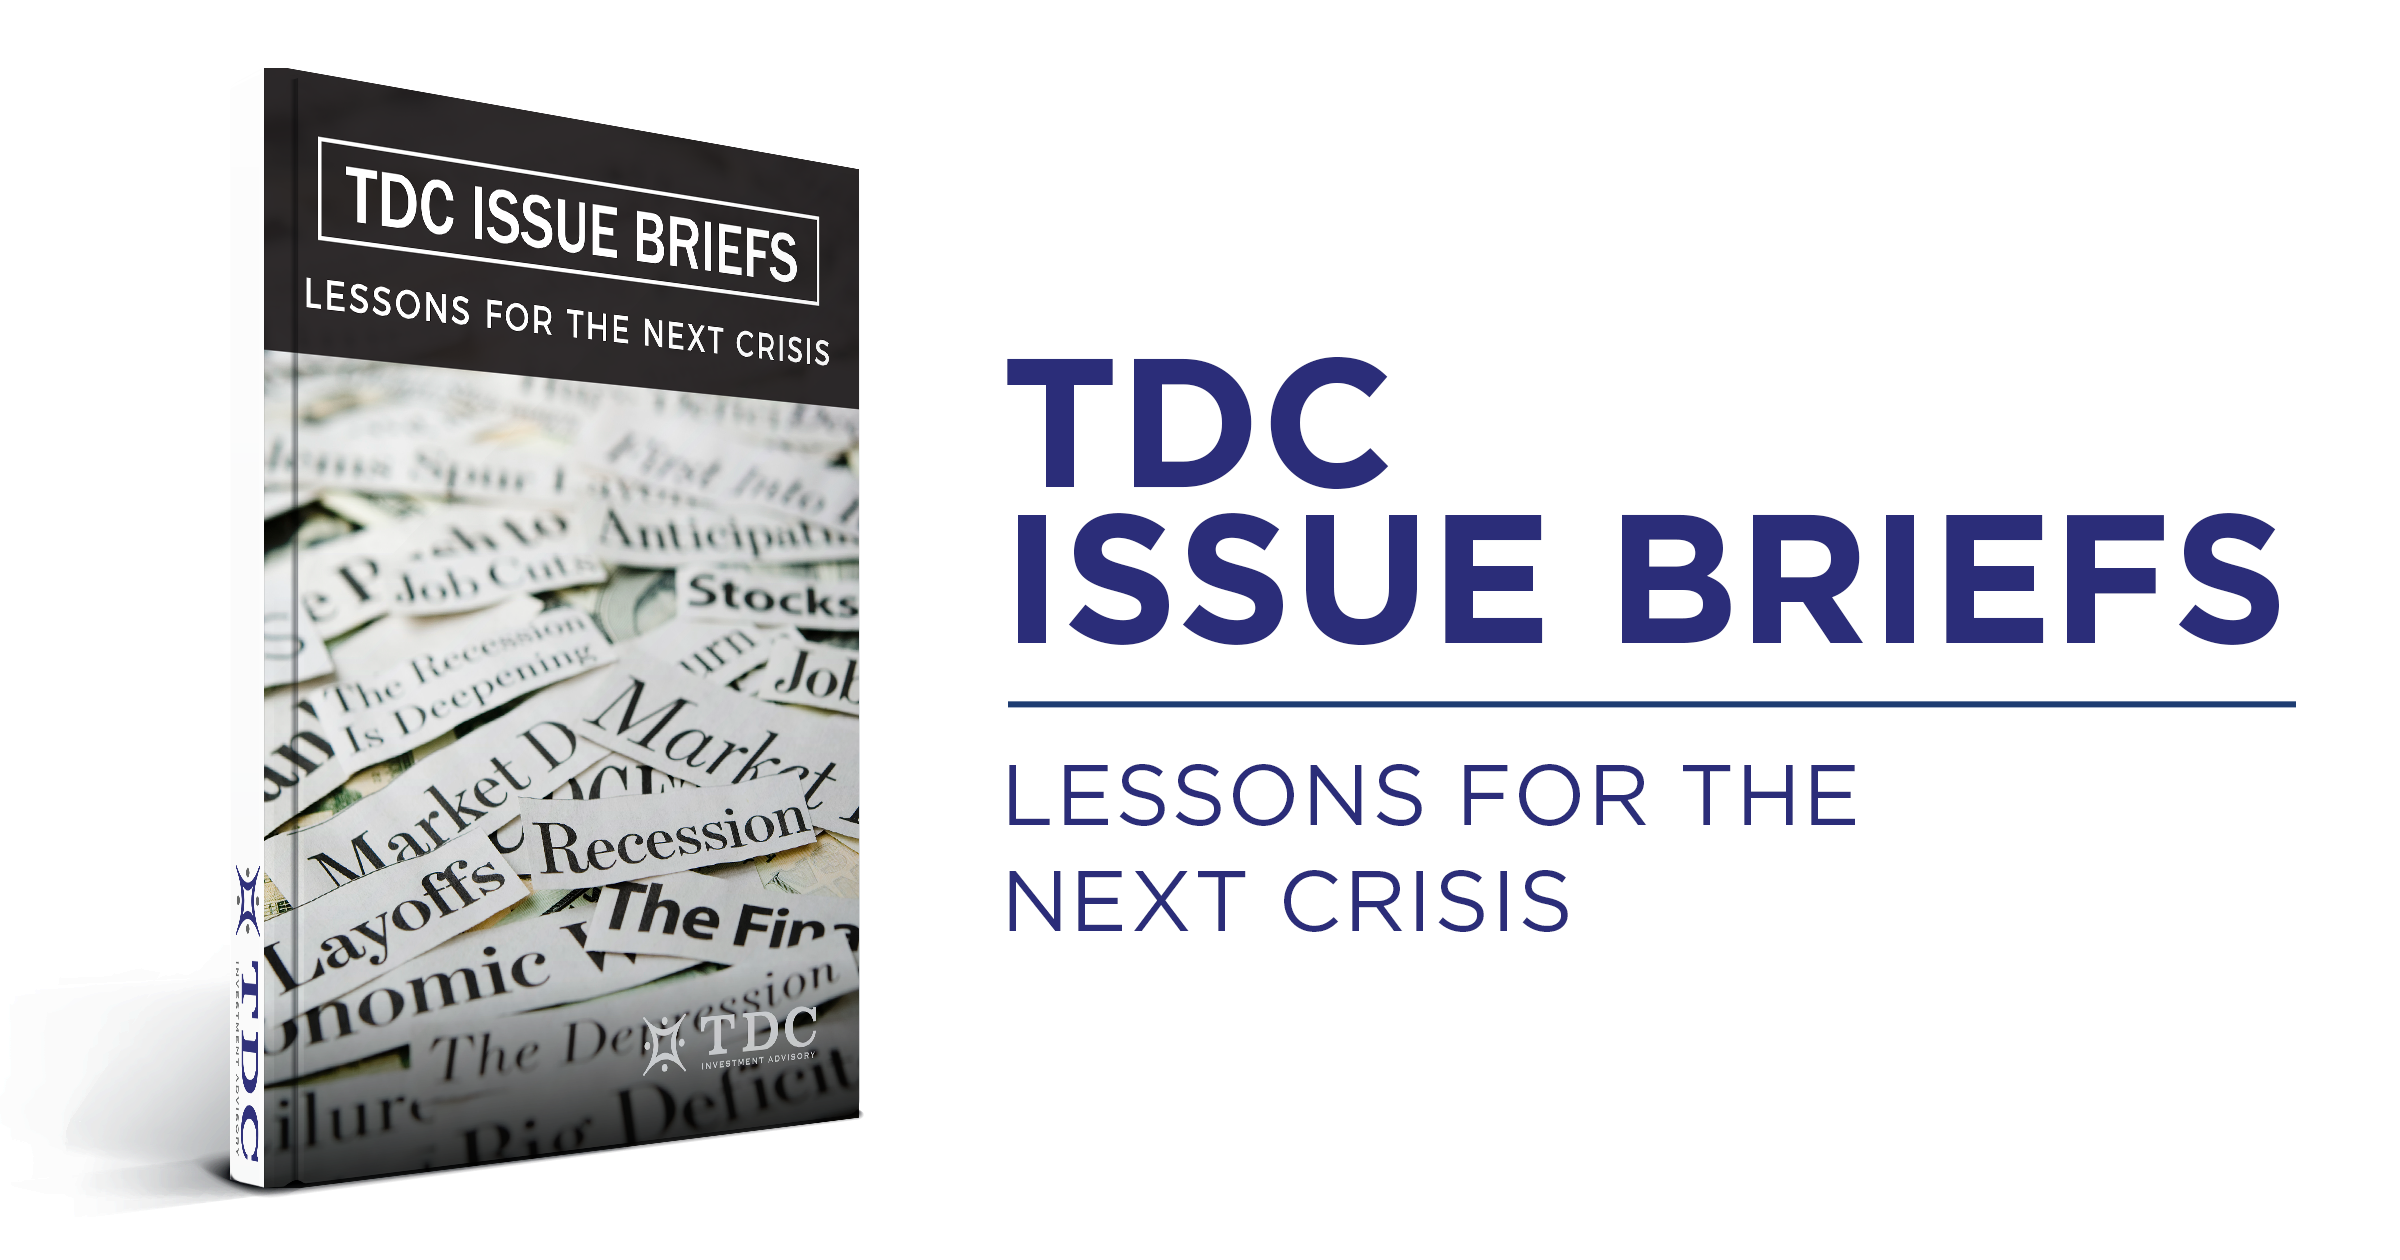 TDC Issue Briefs: Lessons for the Next Crisis